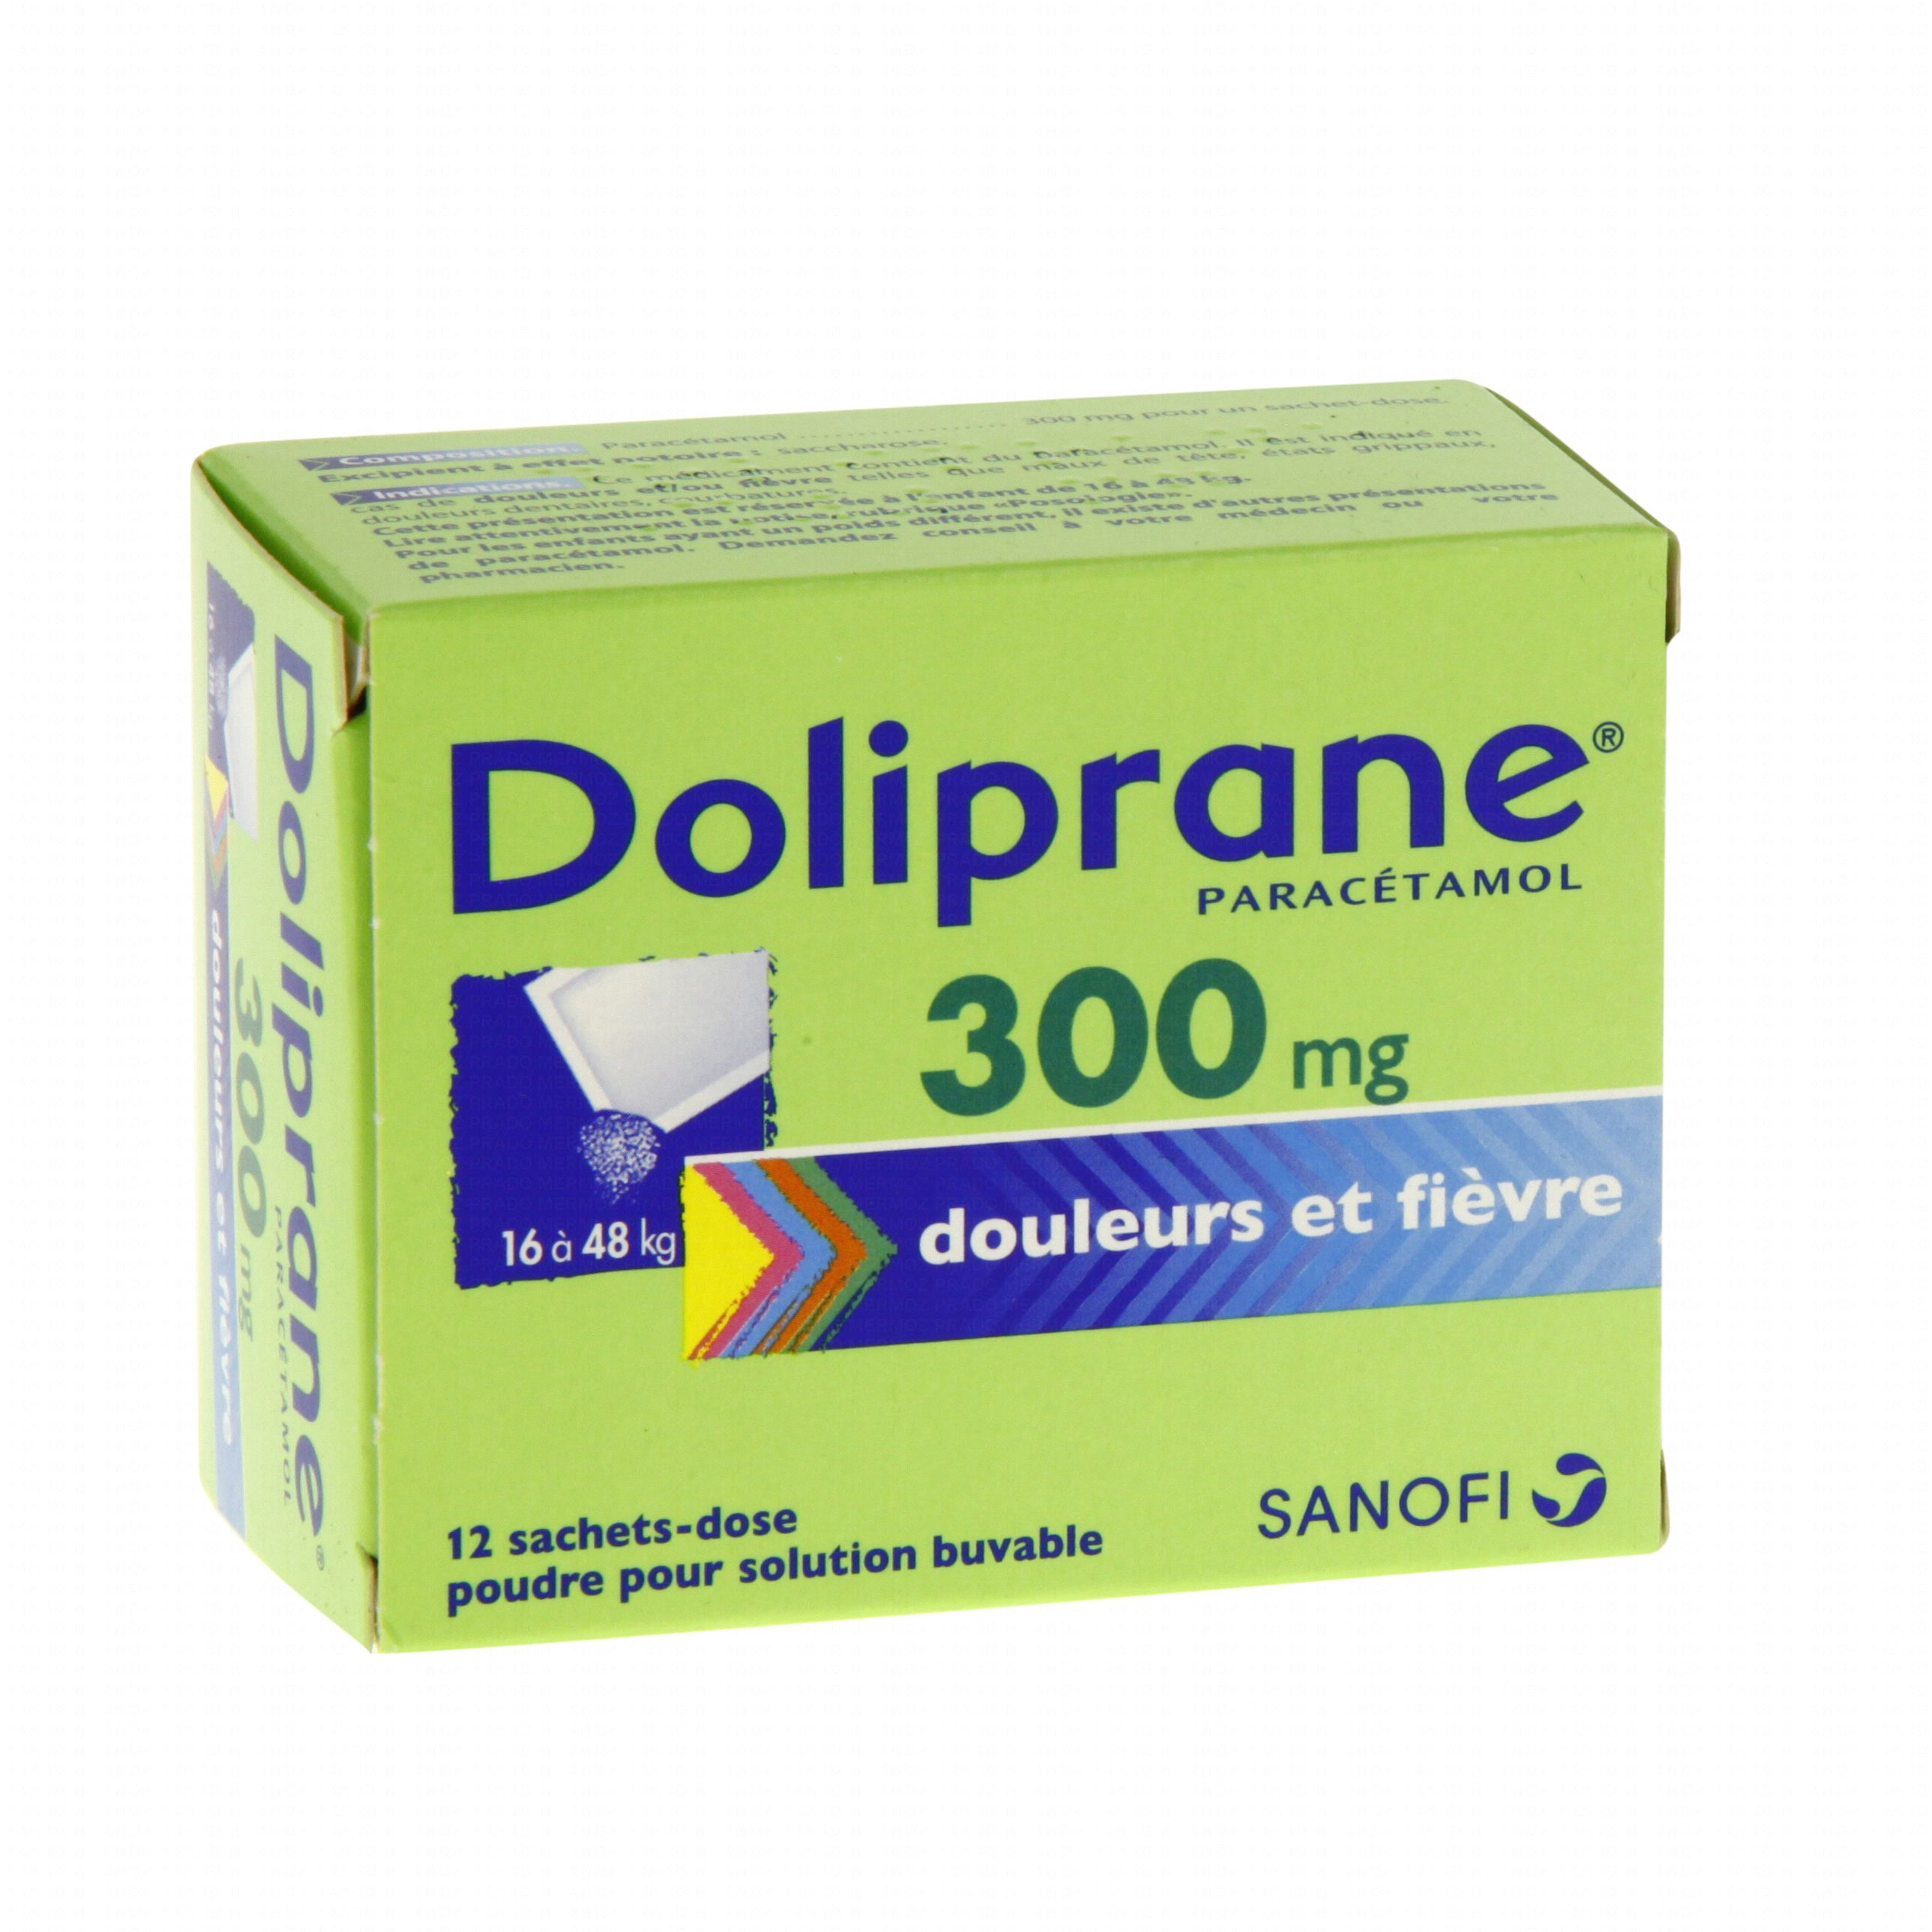 doliprane 300 mg bo te de 12 sachets doses sanofi aventis m dicament conseil pharmacie en. Black Bedroom Furniture Sets. Home Design Ideas